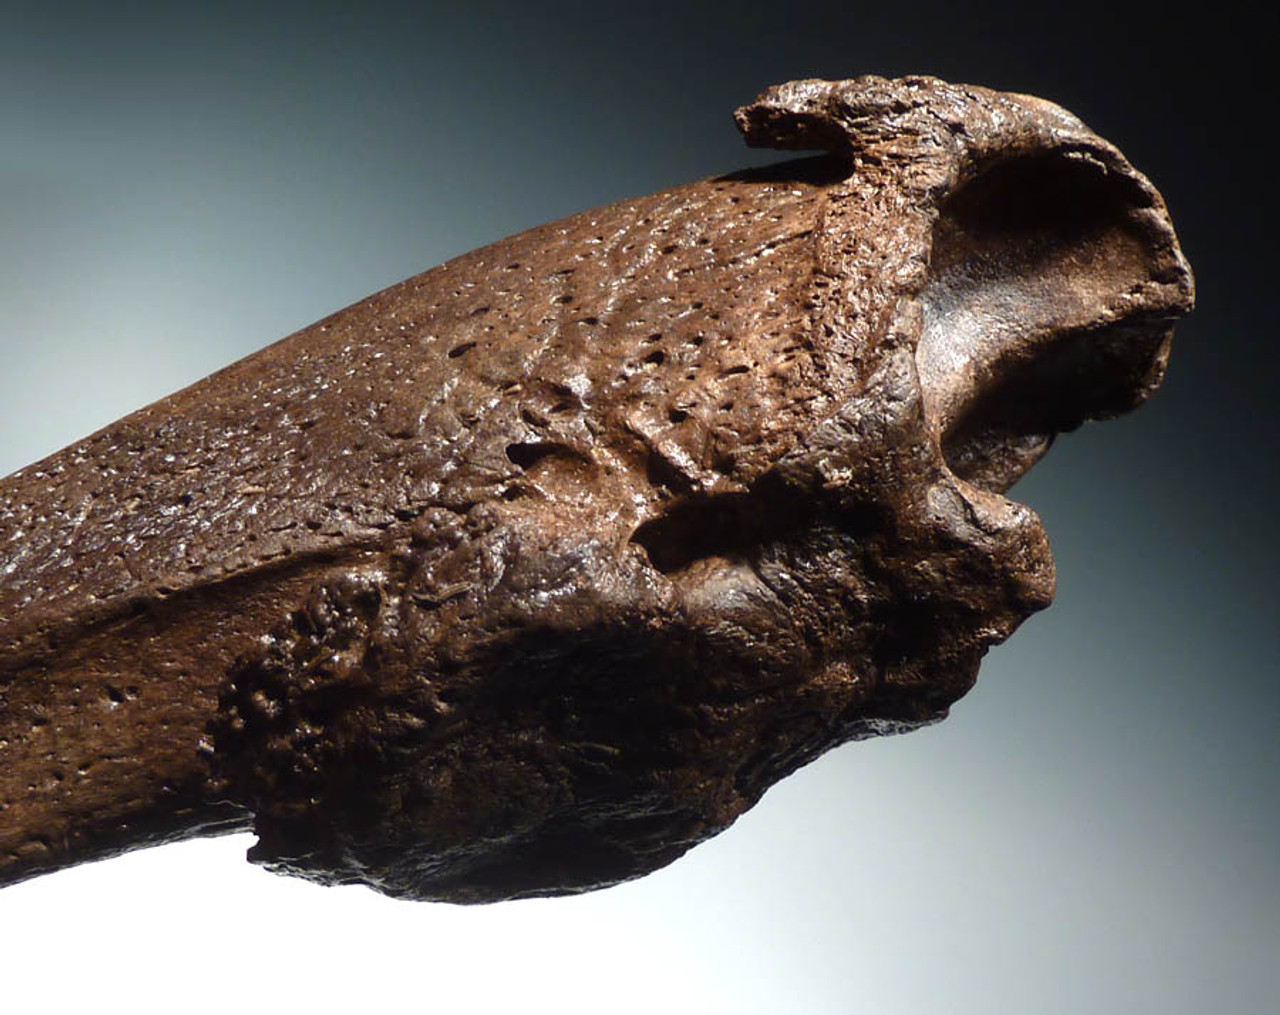 LMX074 - MUSEUM CLASS PERFECT 8 INCH FOSSIL CLAW OF A PARAMYLODON PREHISTORIC GIANT GROUND SLOTH